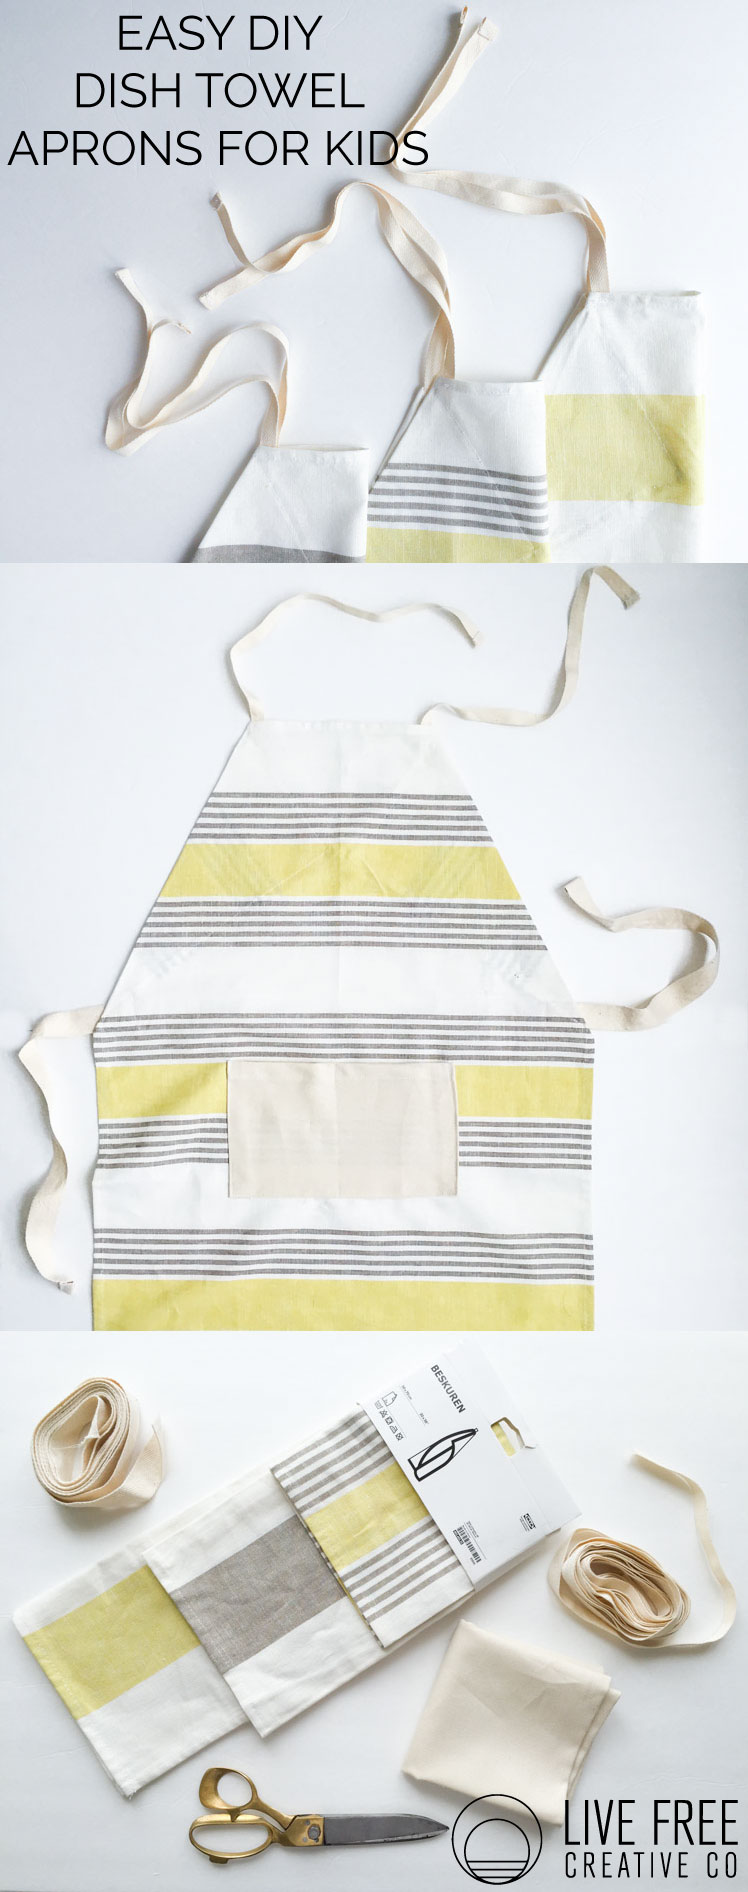 Easy DIY Dish Towel Aprons for Kids- Live Free Creative Co